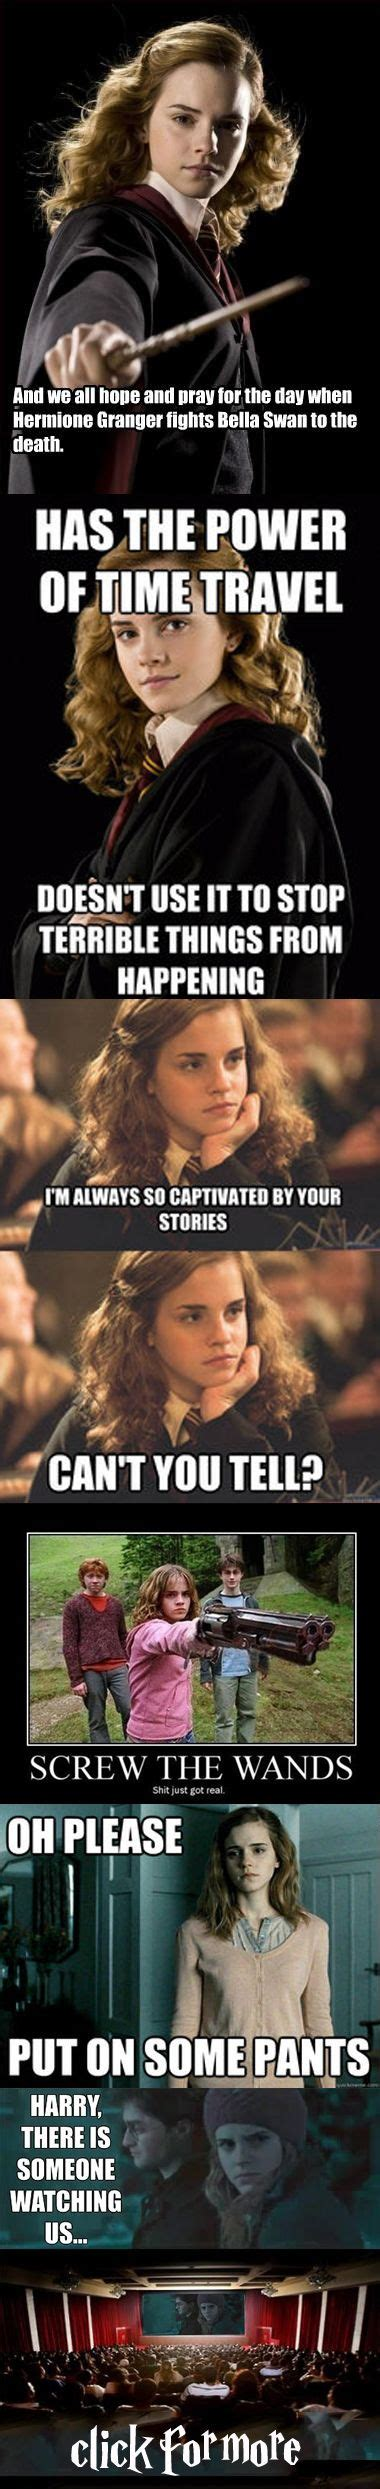 Hermione Meme - 97 best images about funny harry potter pictures on pinterest smosh harry potter funnies and